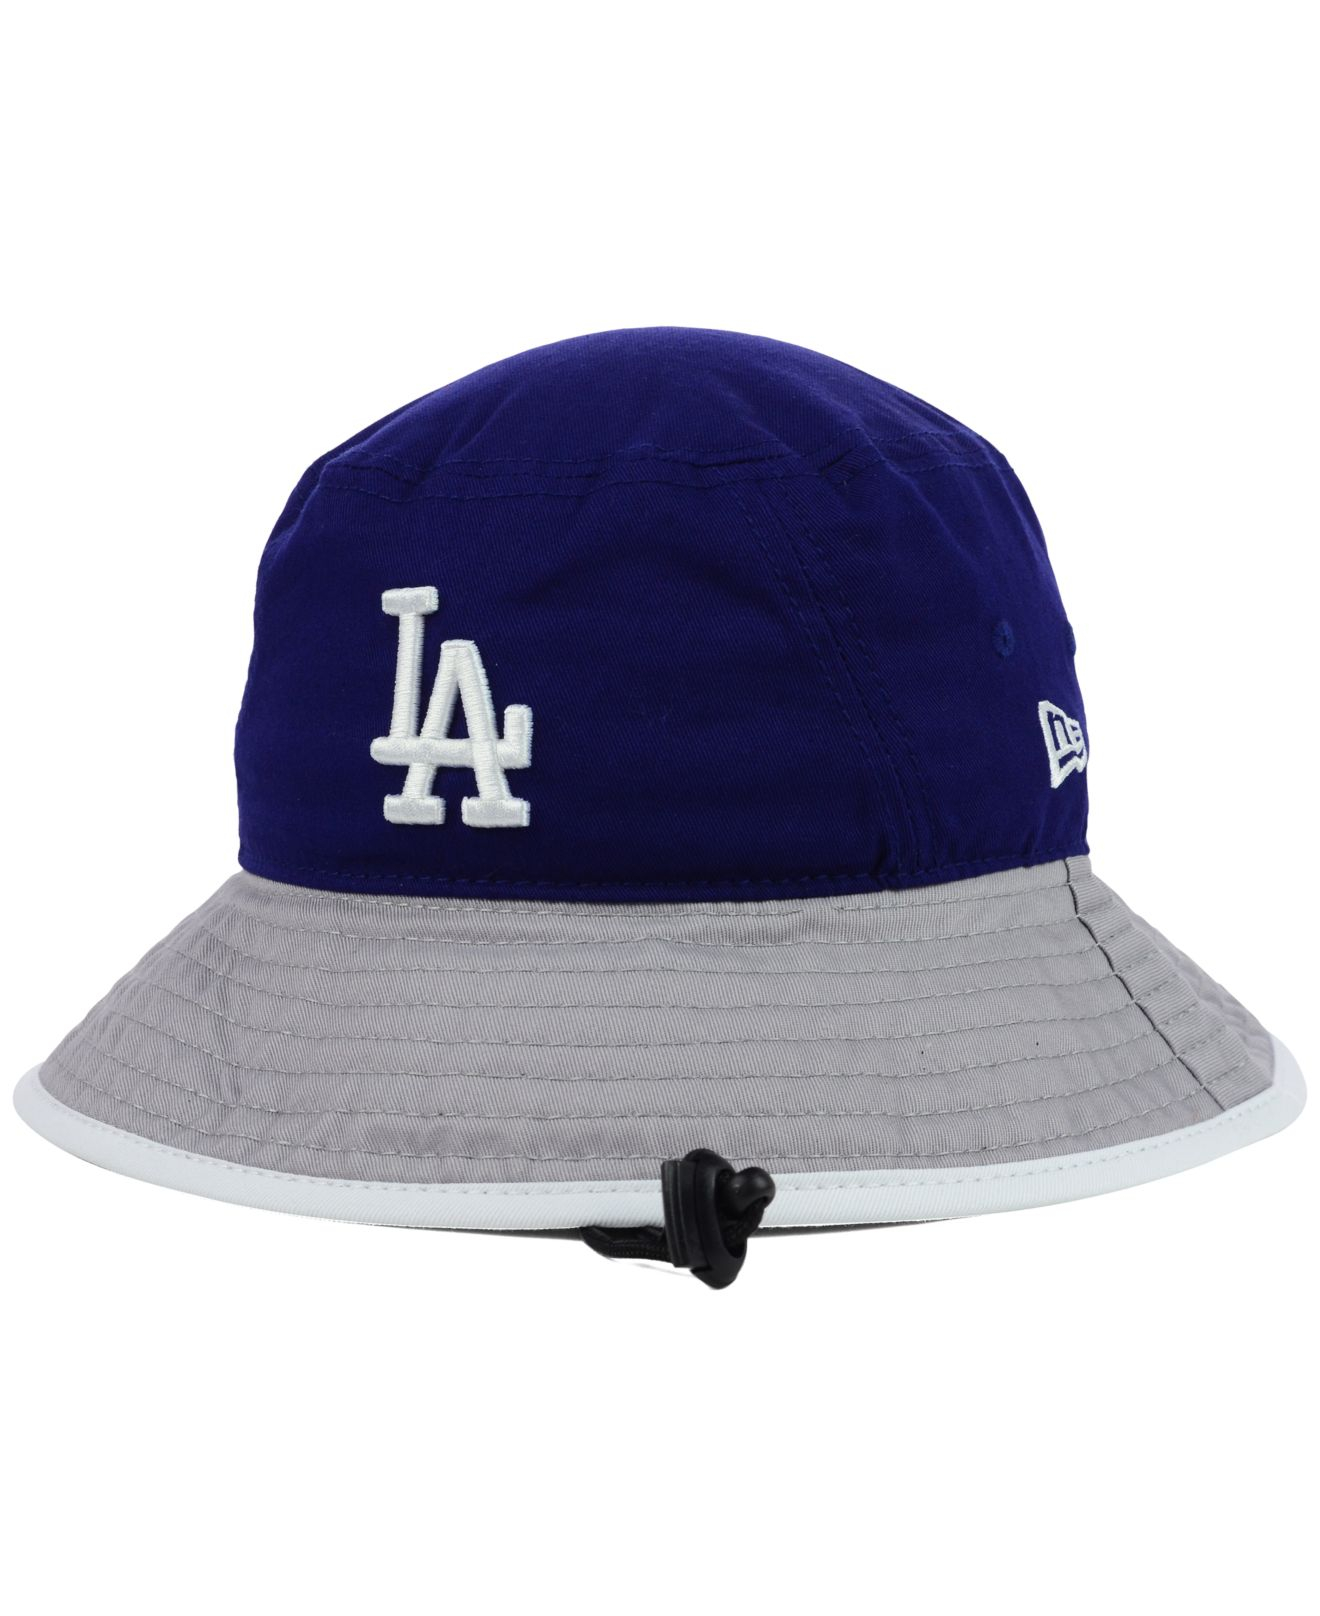 Lyst Ktz Los Angeles Dodgers Tipped Bucket Hat In Blue For Men 776aef275784